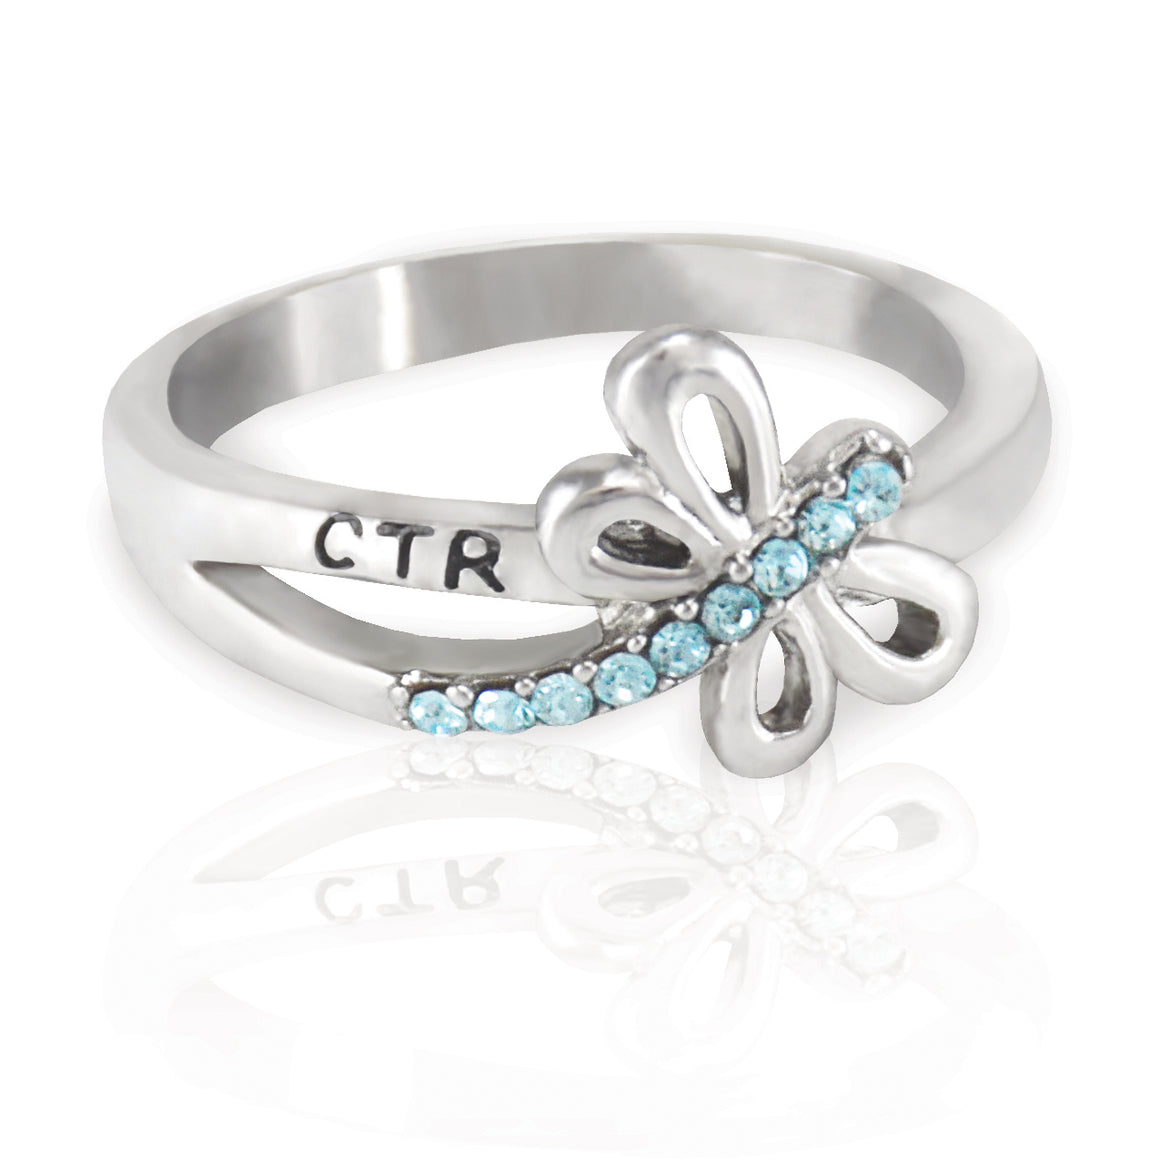 CTR Designer Dragonfly Ring